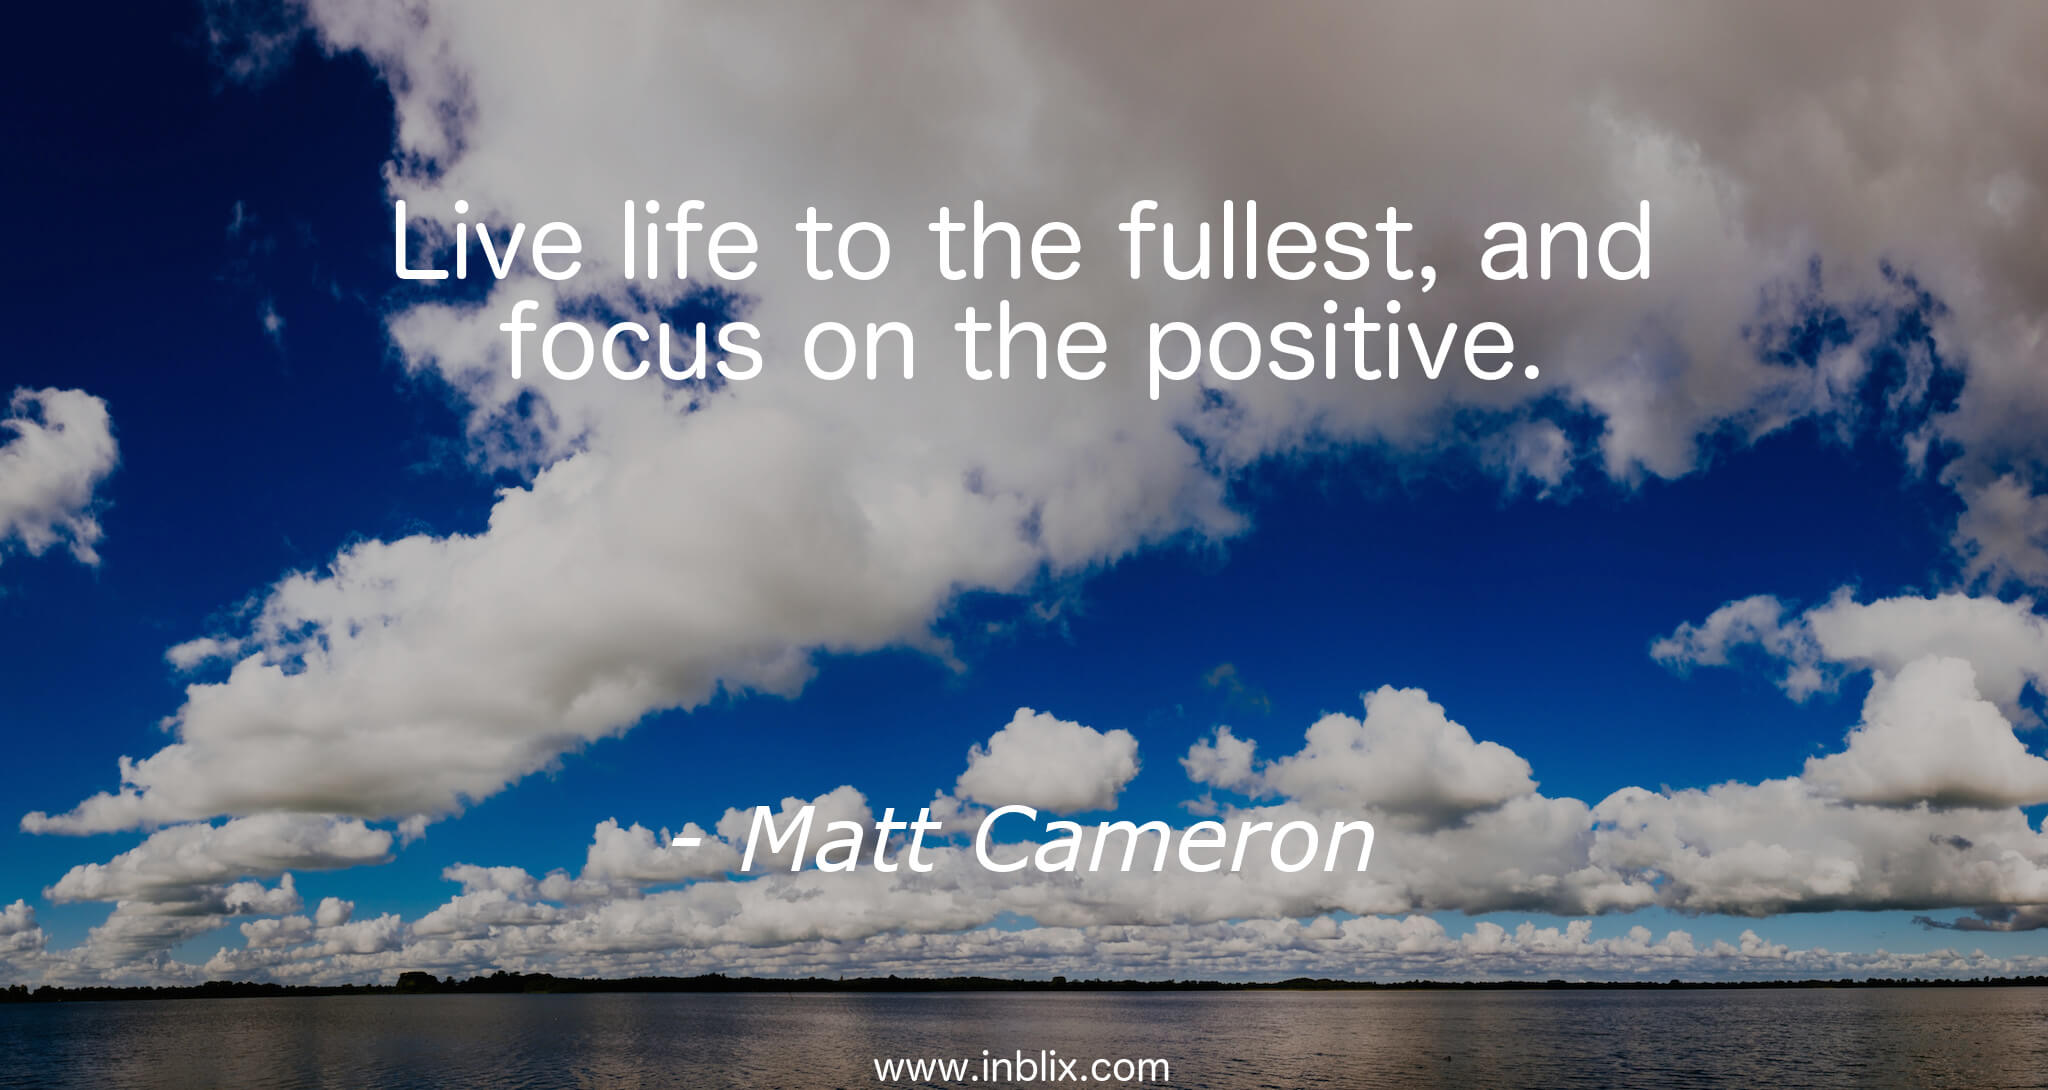 Live Life To The Fullest Quotes Live Life To The Fullest Andmatt Cameron  Inblix